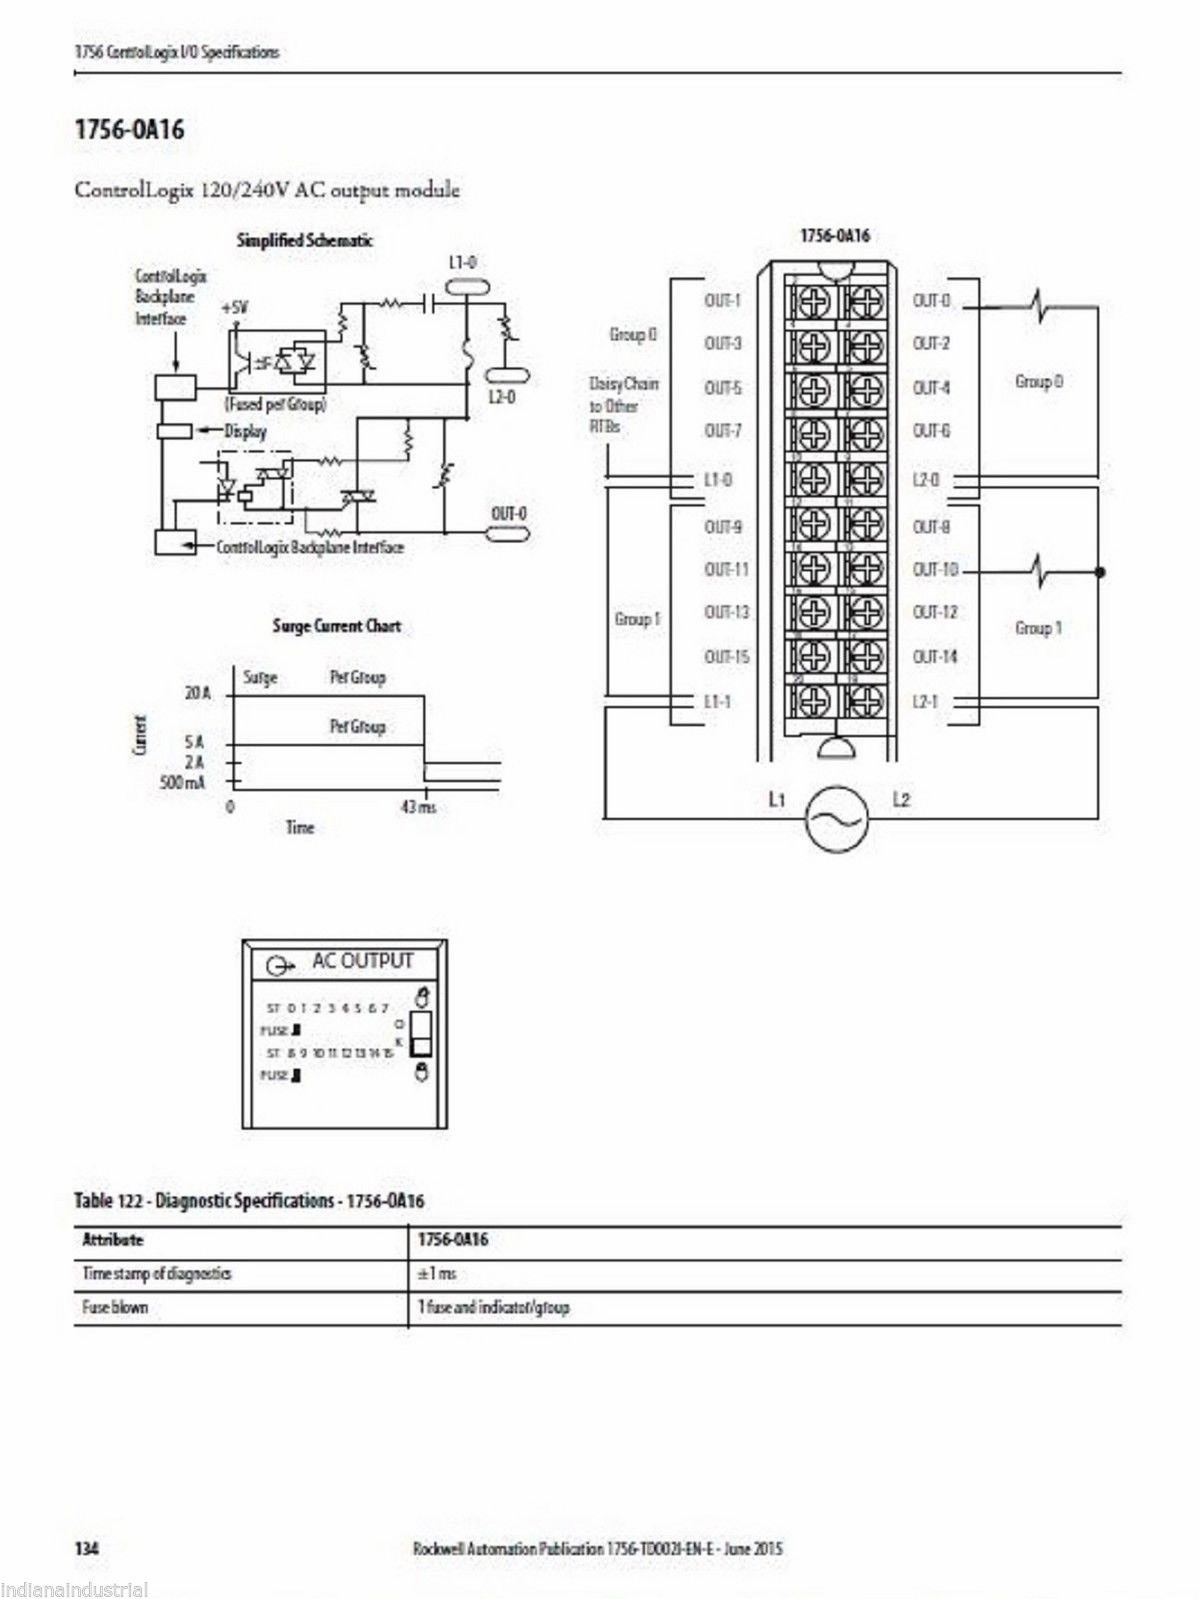 1756 ob16e wiring diagram wiring library totalflow wiring diagrams 1756 ob16e wiring diagram